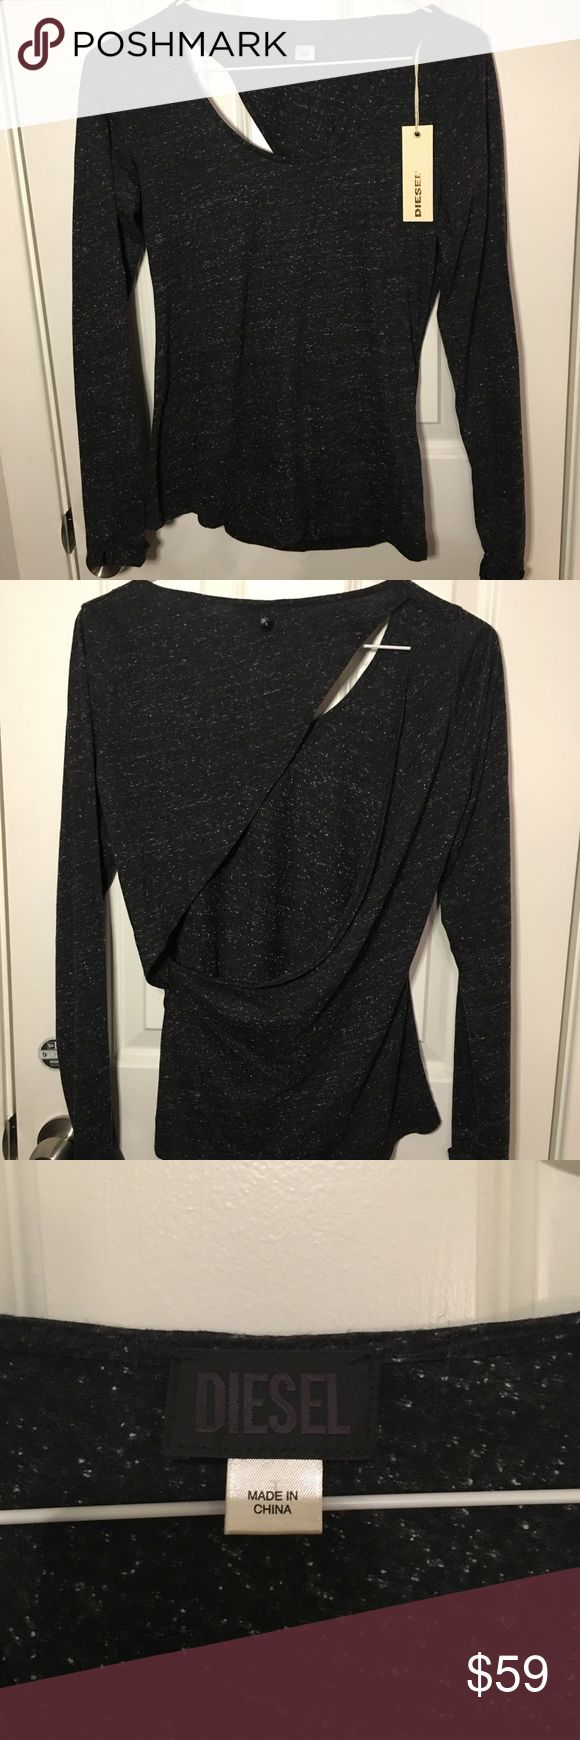 Diesel long sleeve top with opening in the back. Diesel very cute dark grey top with opening in the back. New with tags.feels like a XS/ S Diesel Tops Tees - Long Sleeve